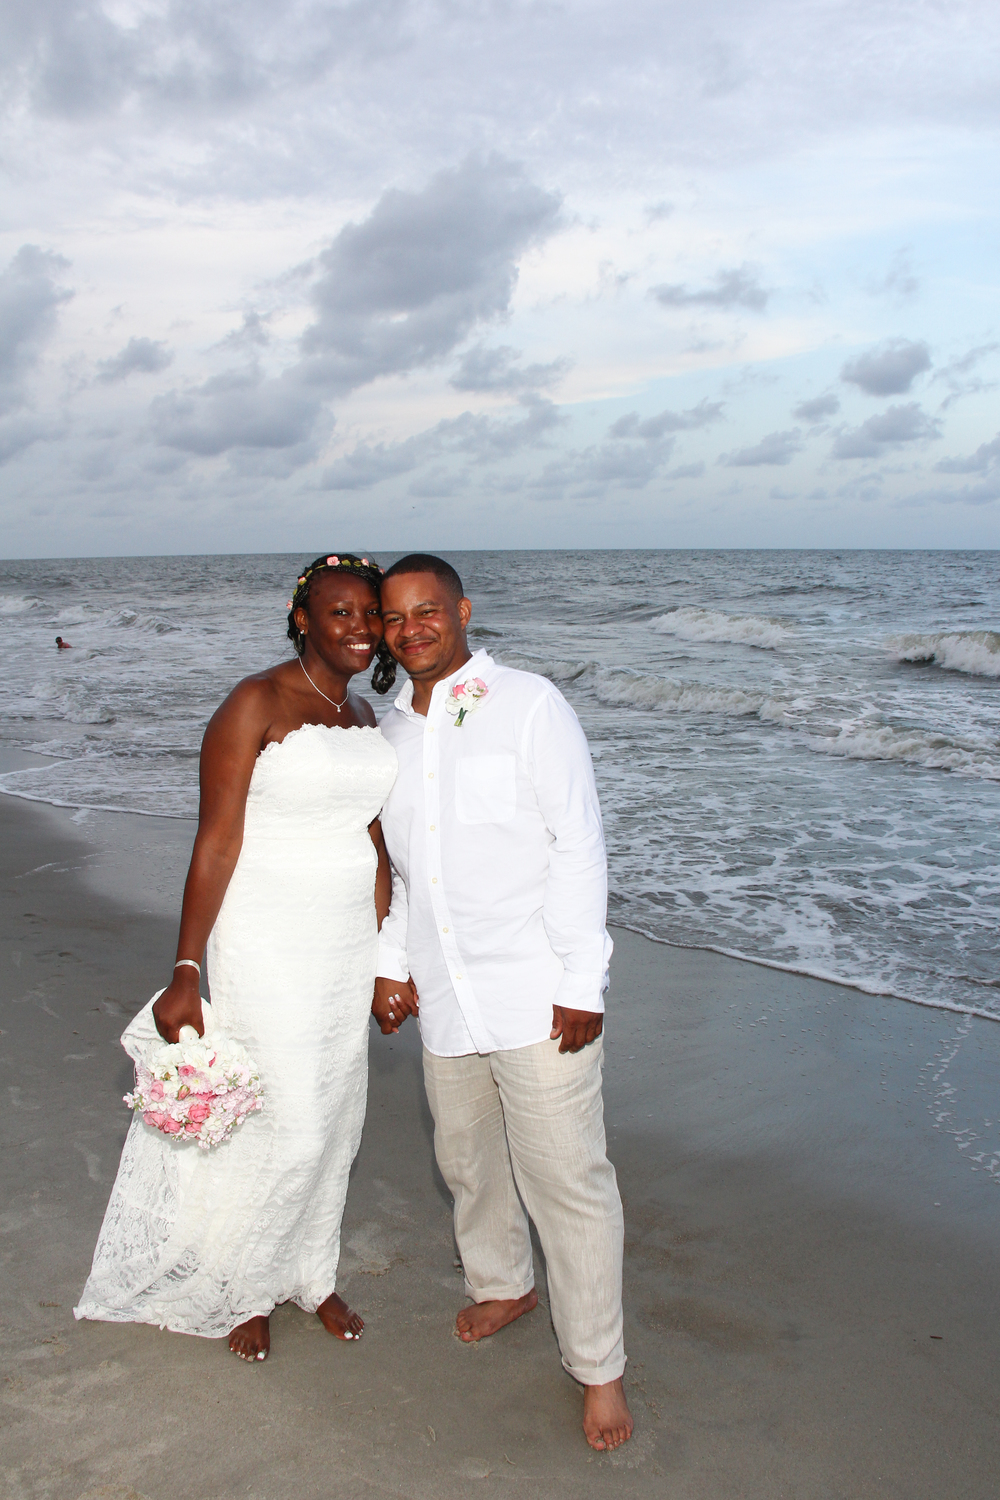 Hilton Head Island beach wedding